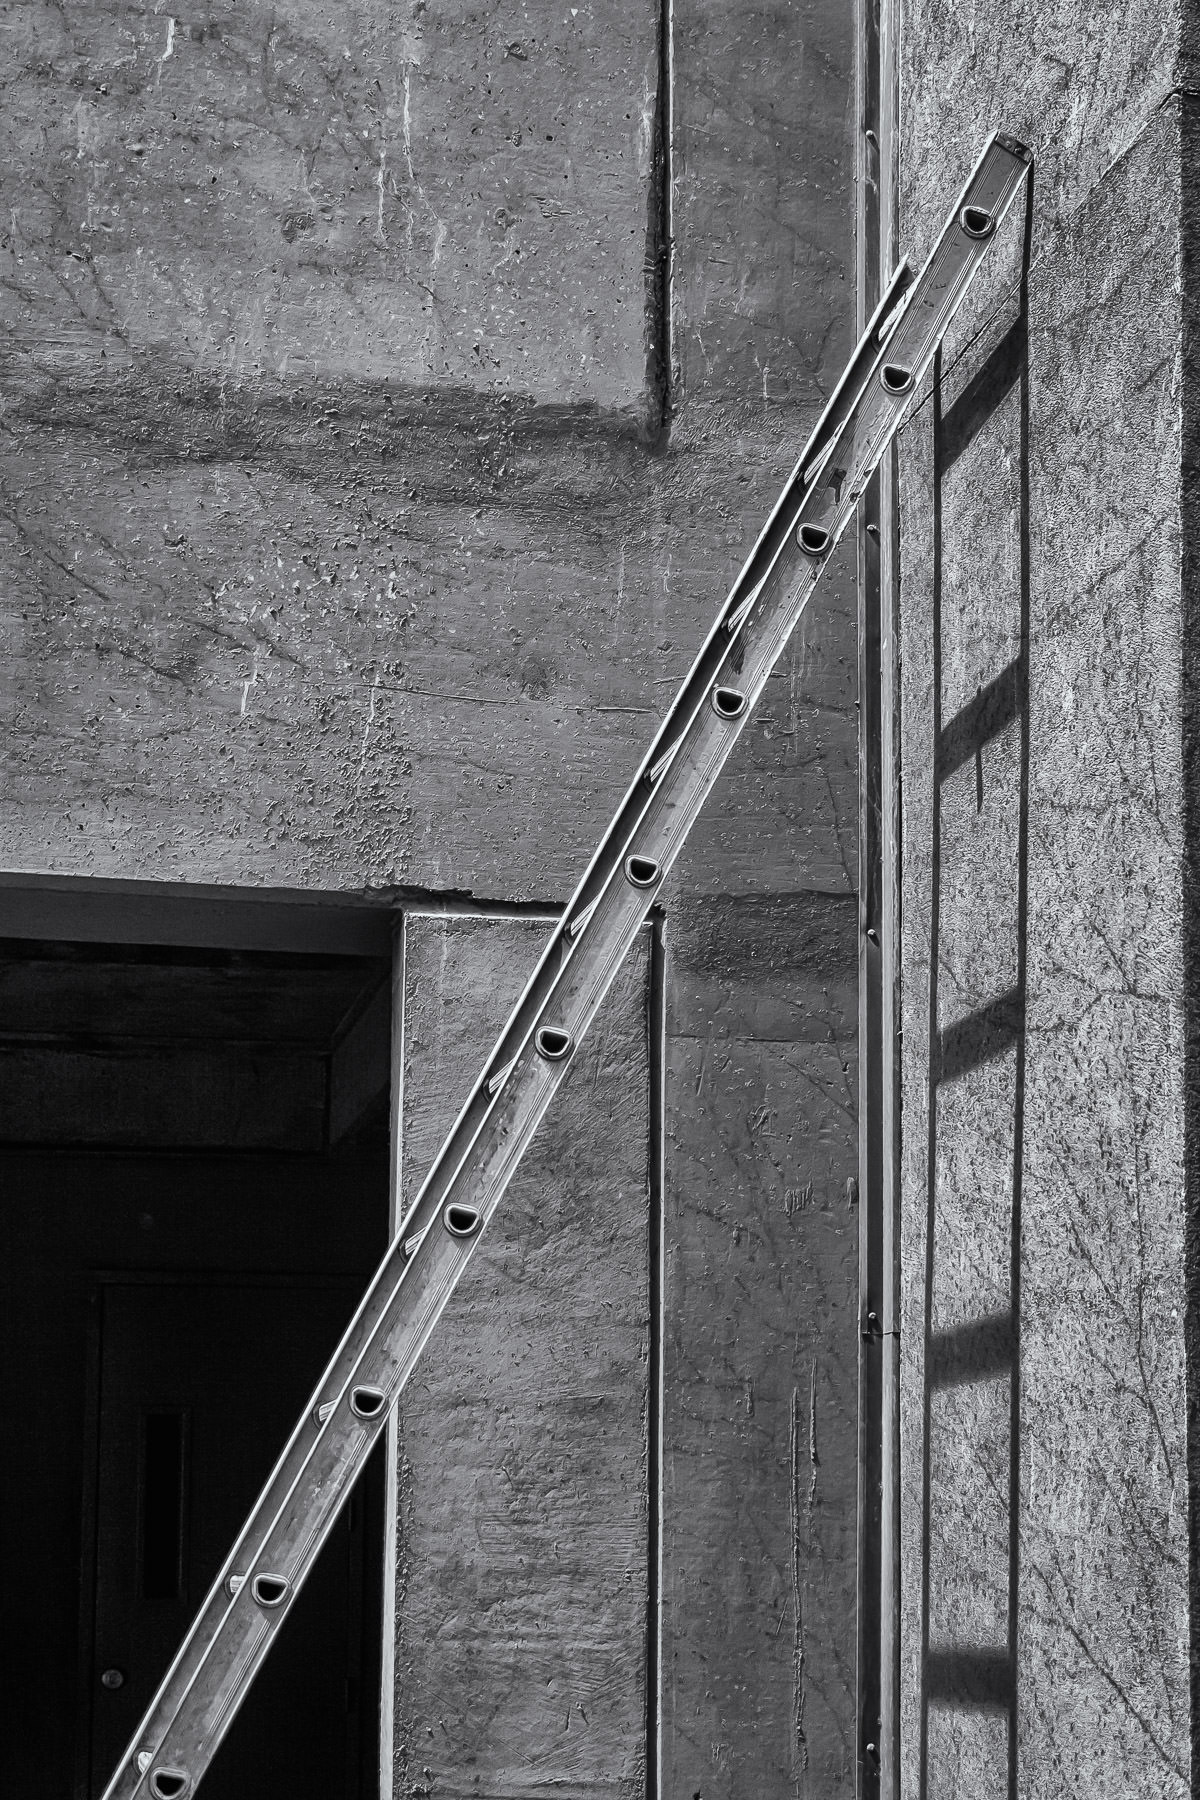 A ladder leaning unattended against a wall in Downtown Plano, Texas.